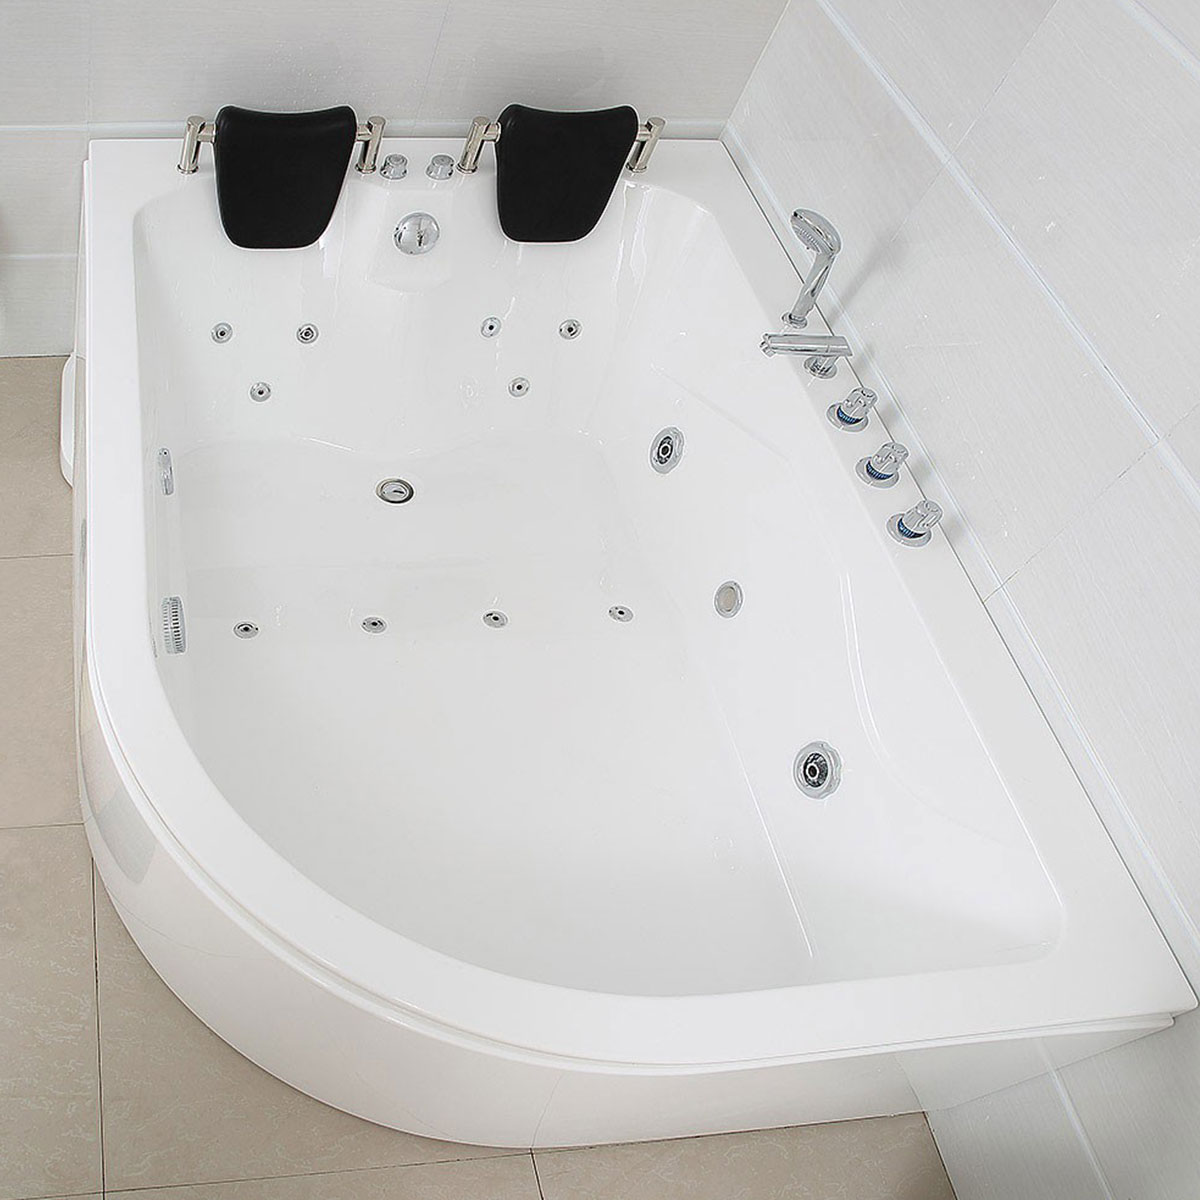 xxl luxus whirlpool badewanne bali links mit 14 massage d sen armaturen spa f r bad linke. Black Bedroom Furniture Sets. Home Design Ideas